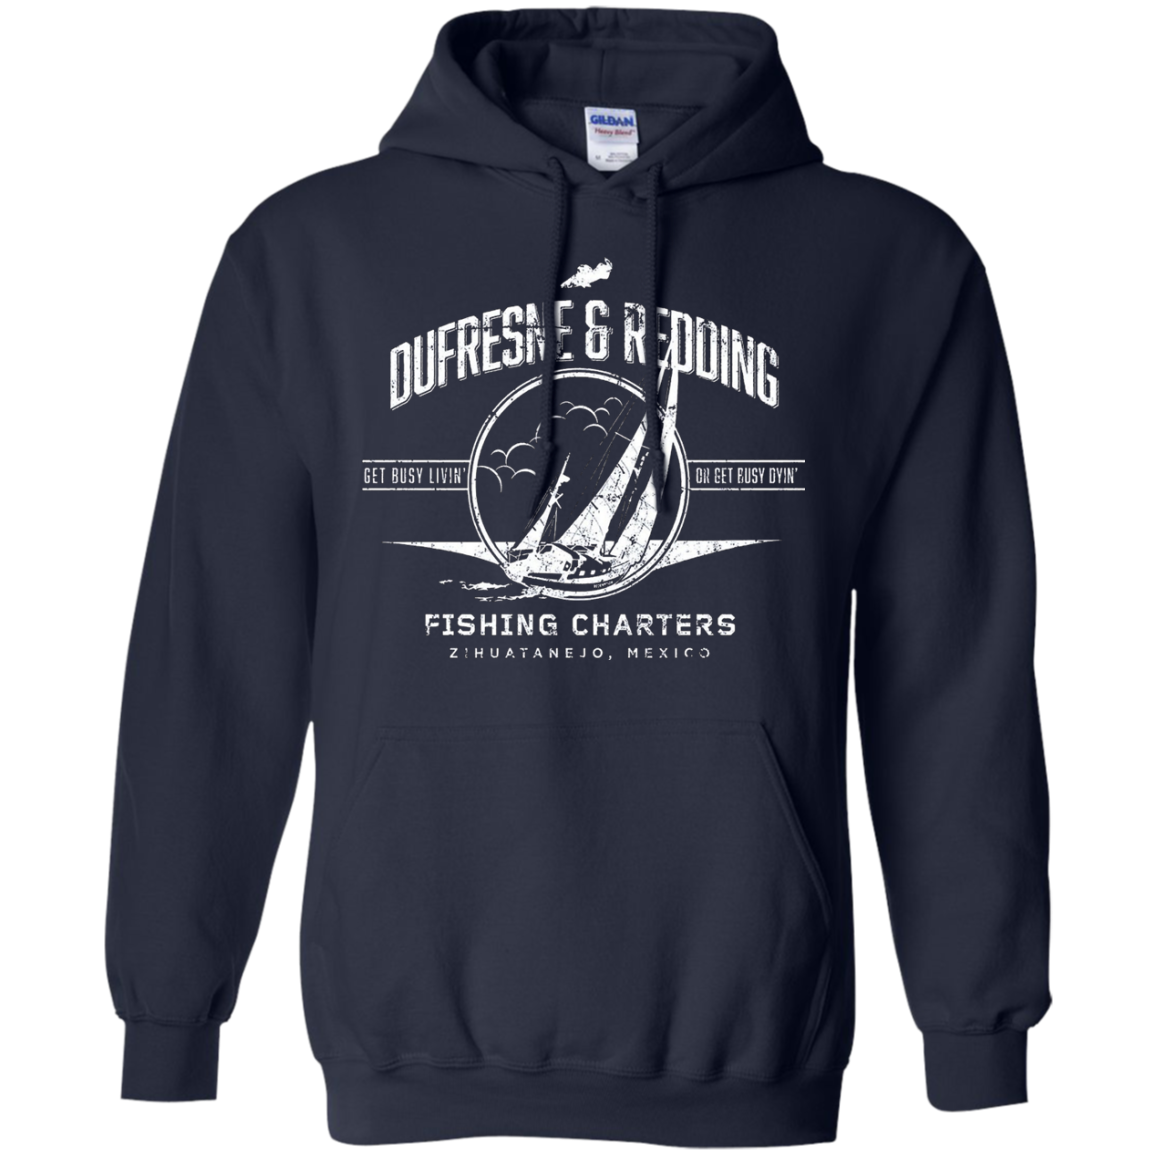 Dufresne & Redding Fishing Charters T Shirt